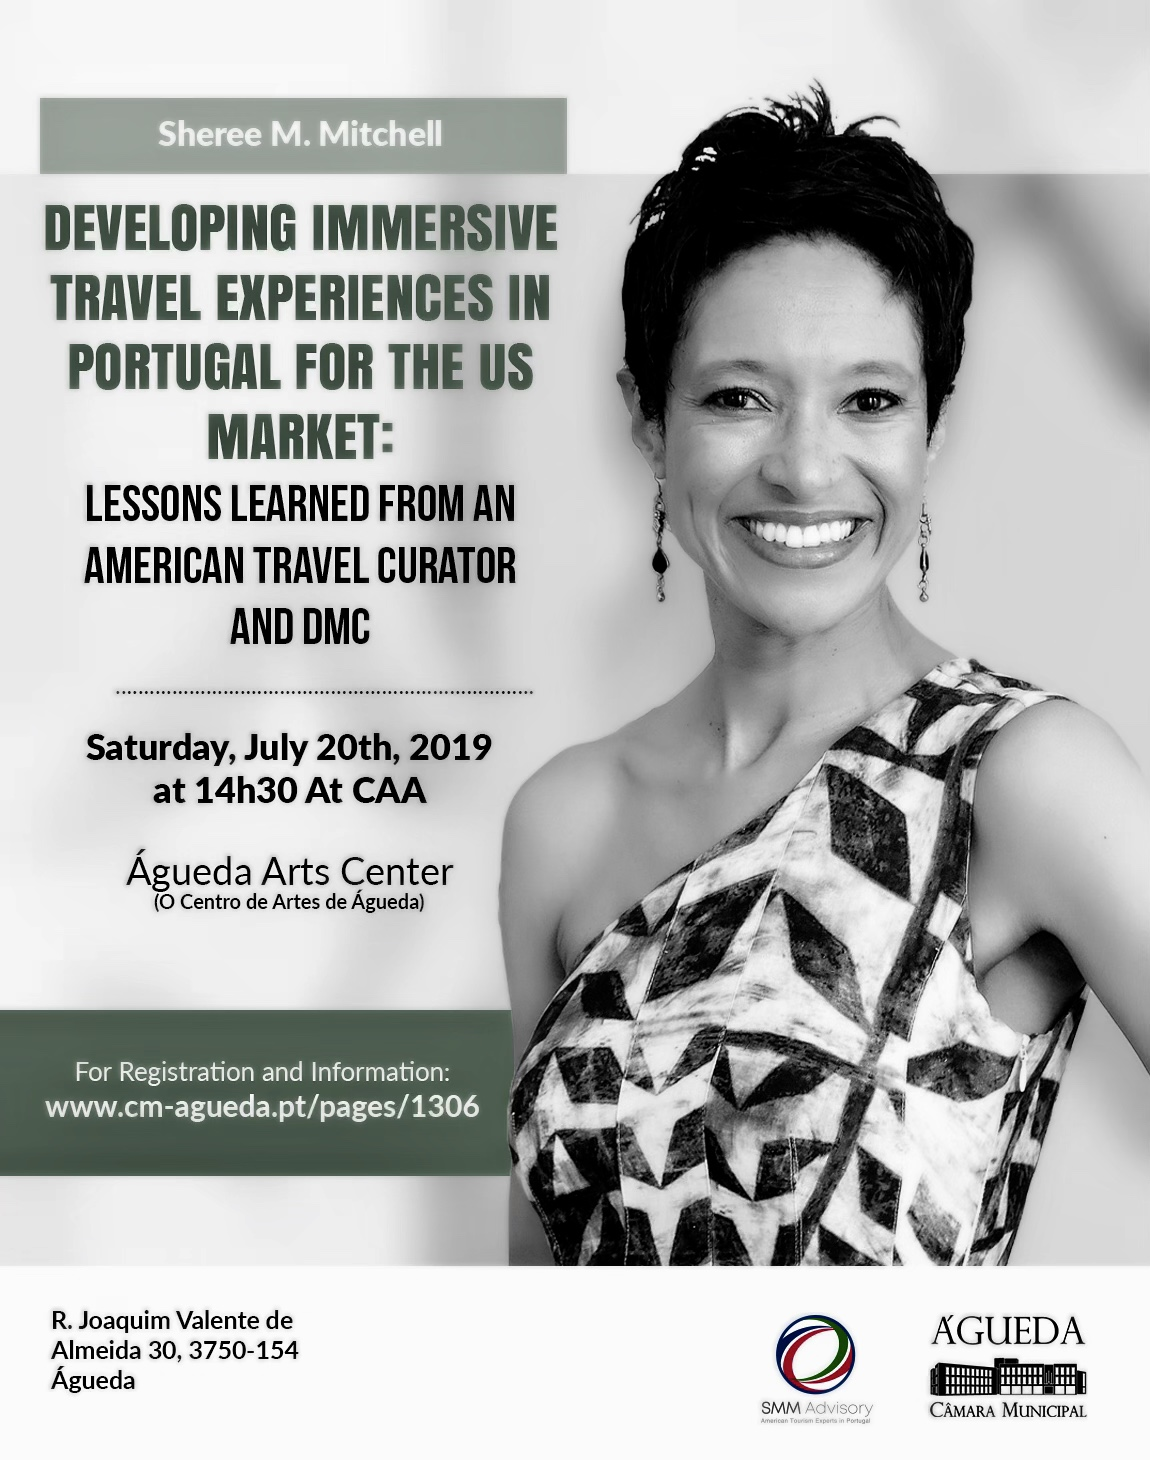 Sheree M. Mitchell to speak about her experiences creating travel programs in Agueda, Portugal